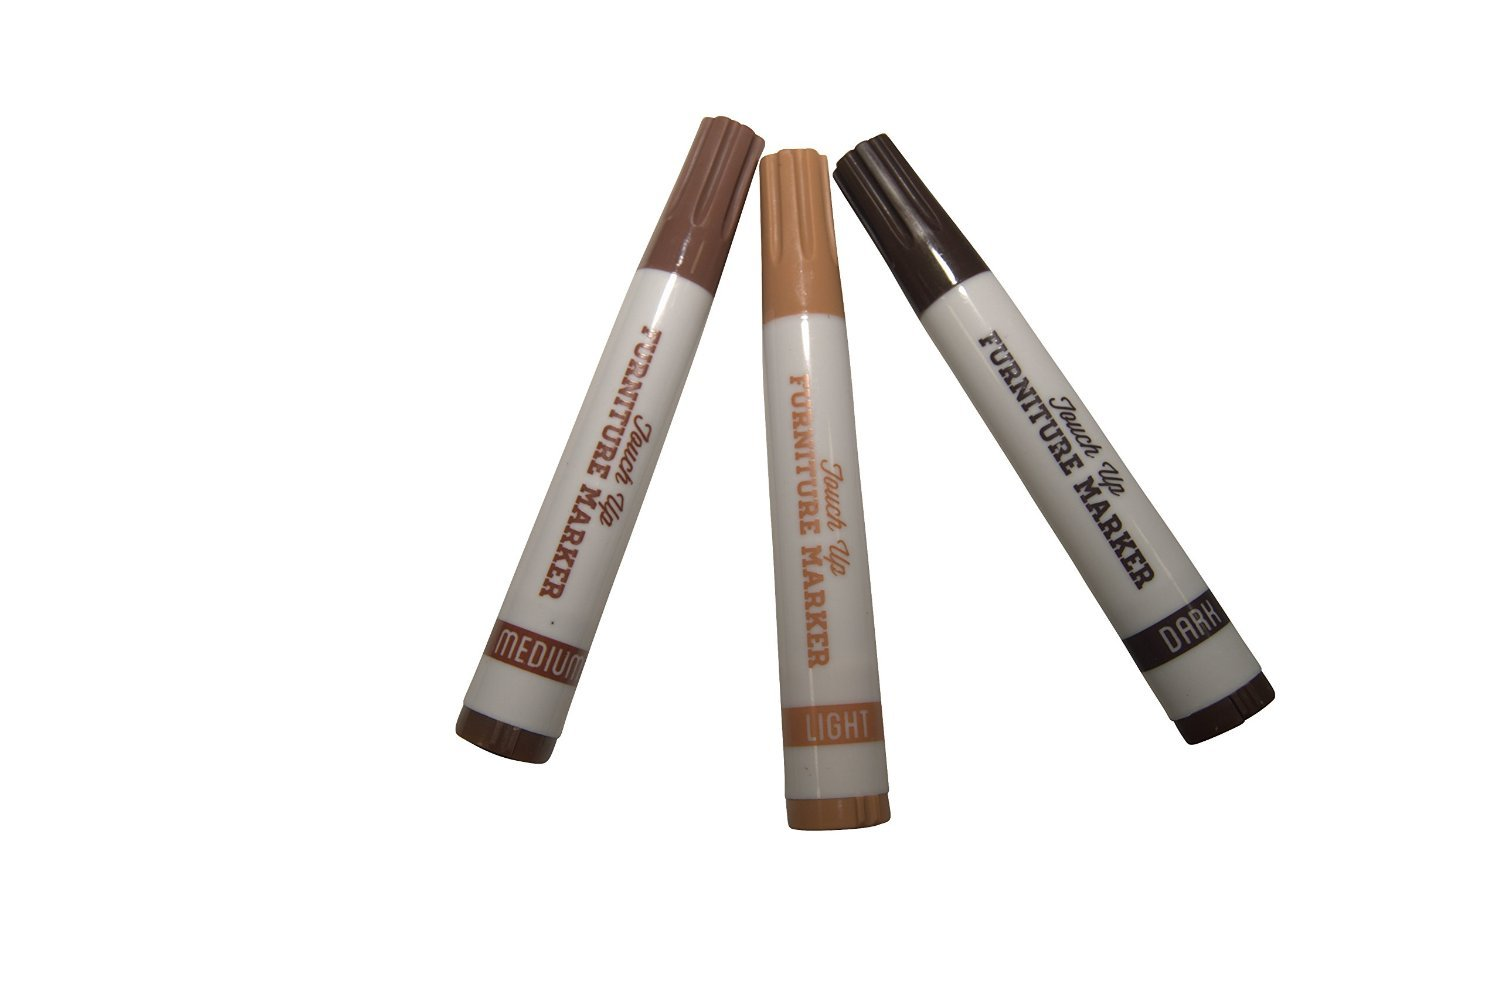 Good Living Furniture Touch-Up Markers Set of 3 - Pack of 1 by Good Living (Image #1)